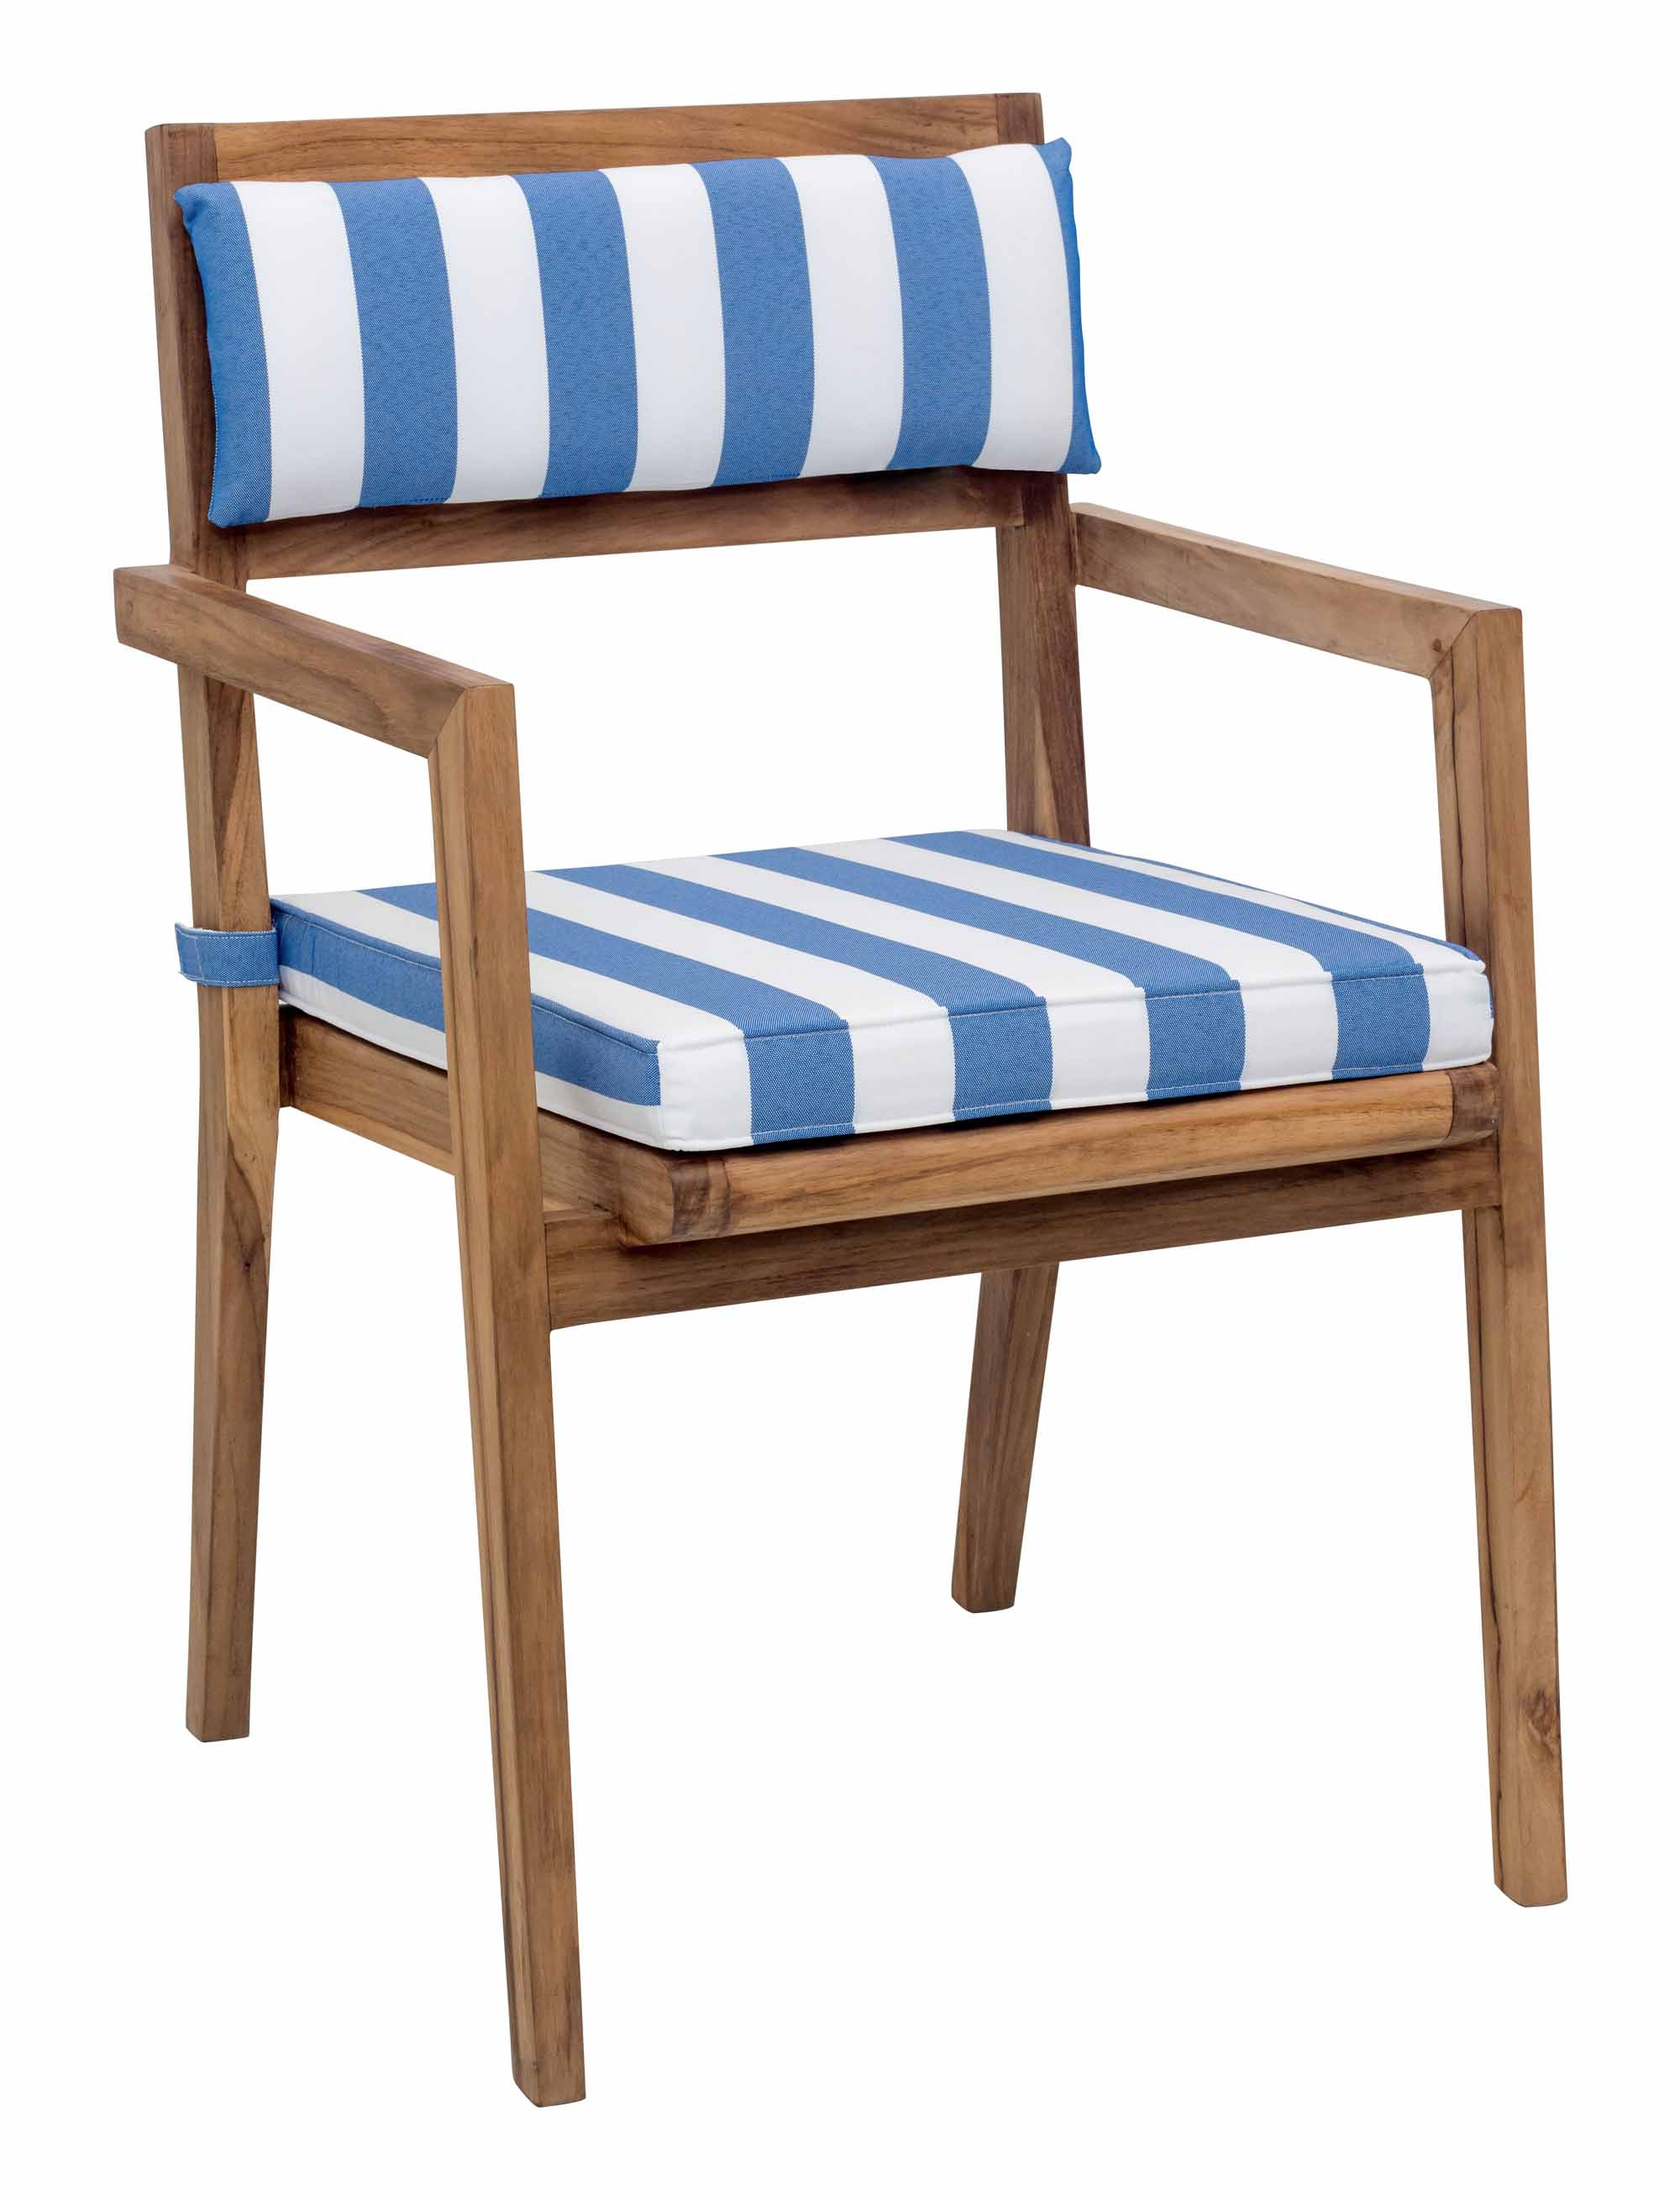 Nautical Chair Back Cushion Blue amp White Set of 2 by Zuo  : 703557703567703568 1 from futonland.com size 2000 x 2620 jpeg 259kB